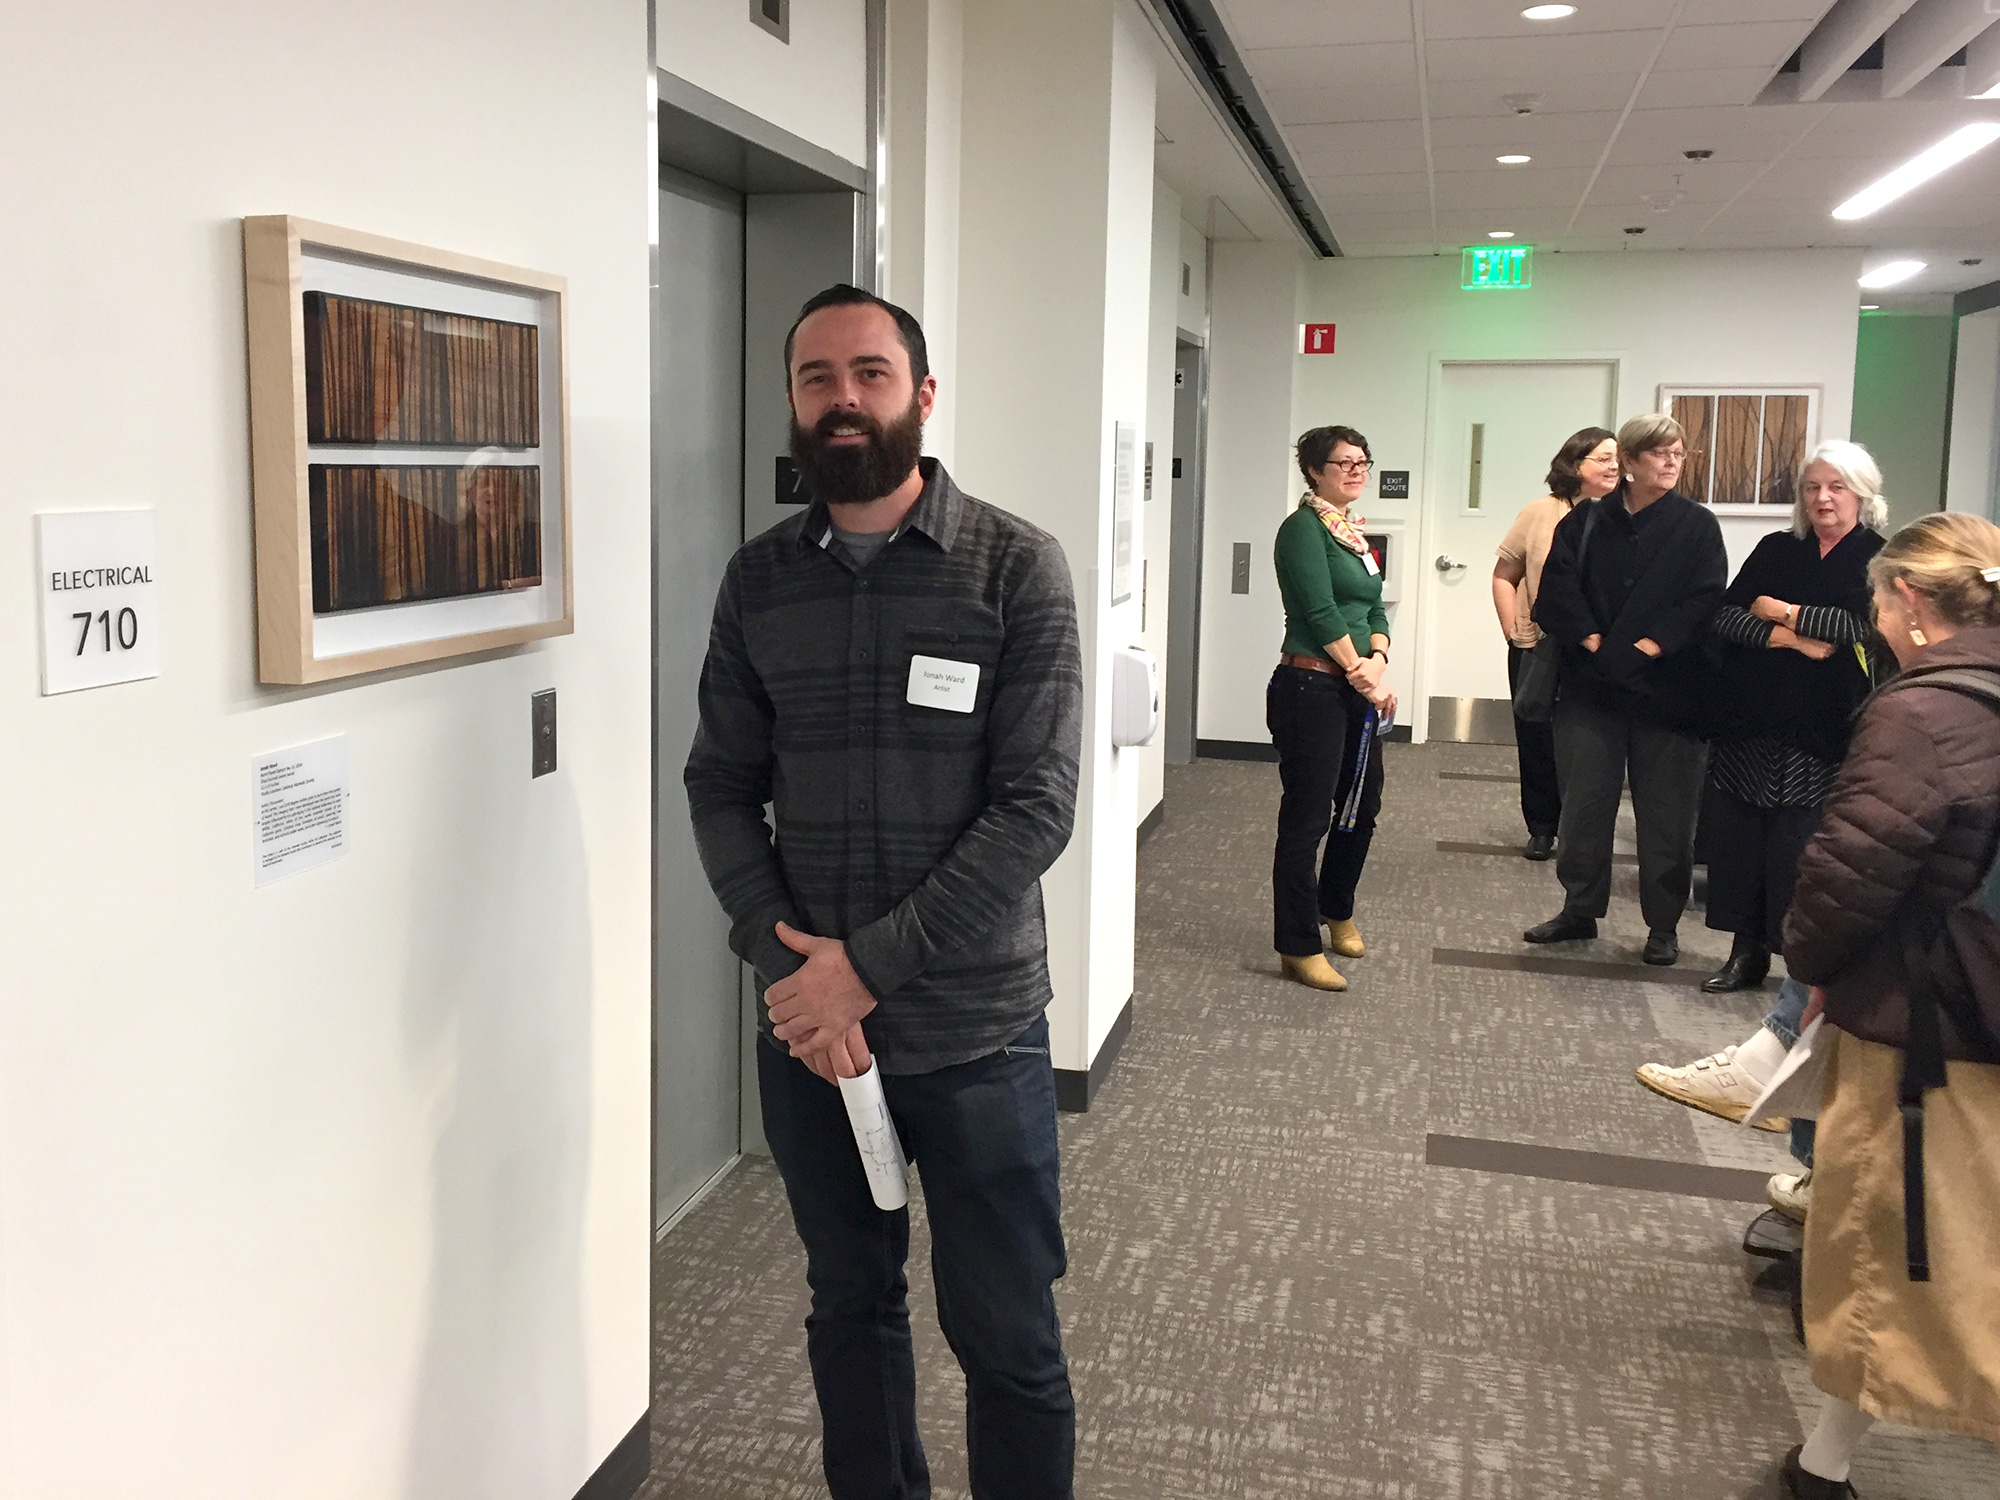 Jonah Ward stands next to another one of his permanently installed glass burned panel pieces during the artist walk-through. The other piece can be seen in the back right.